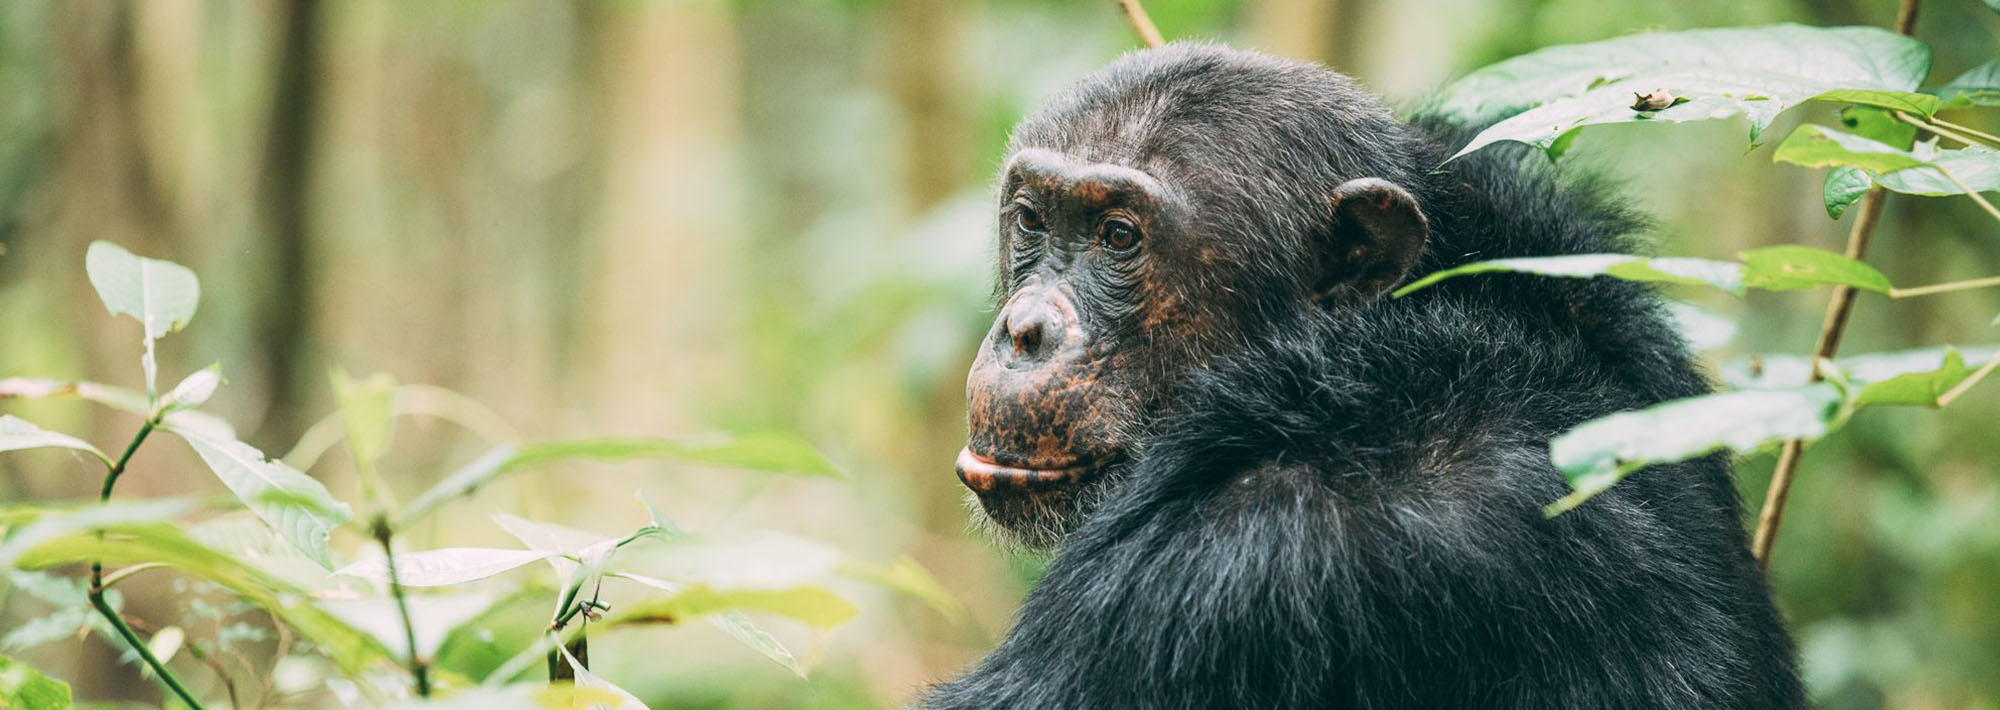 Africa's Great Apes